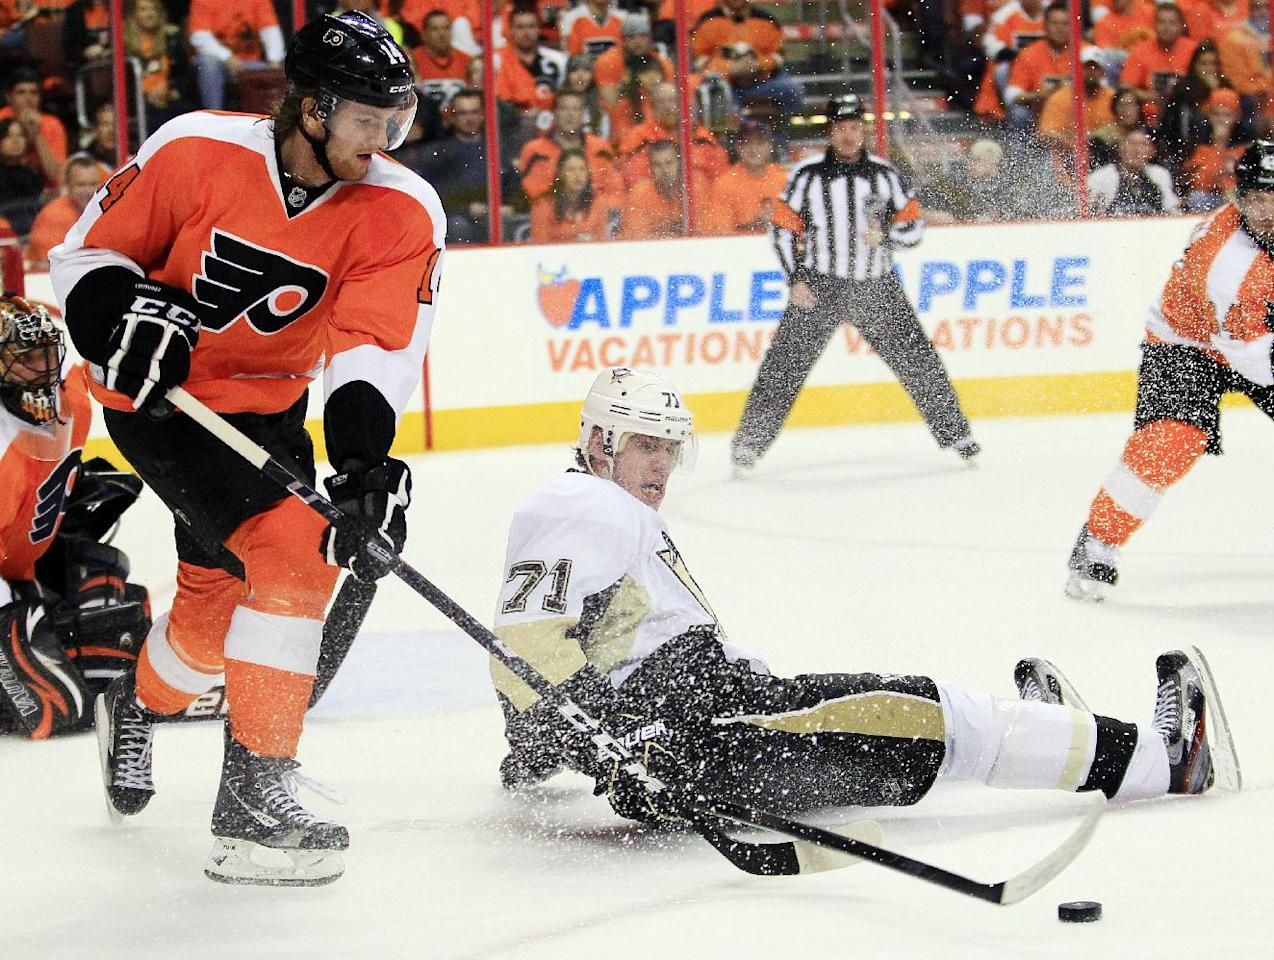 Philadelphia Flyers' Sean Couturier, left, takes control of the puck away from Pittsburgh Penguins' Evgeni Malkin during the first period in Game 6 of an NHL hockey Stanley Cup first-round playoff series, Sunday, April 22, 2012, in Philadelphia. (AP Photo/Tom Mihalek)